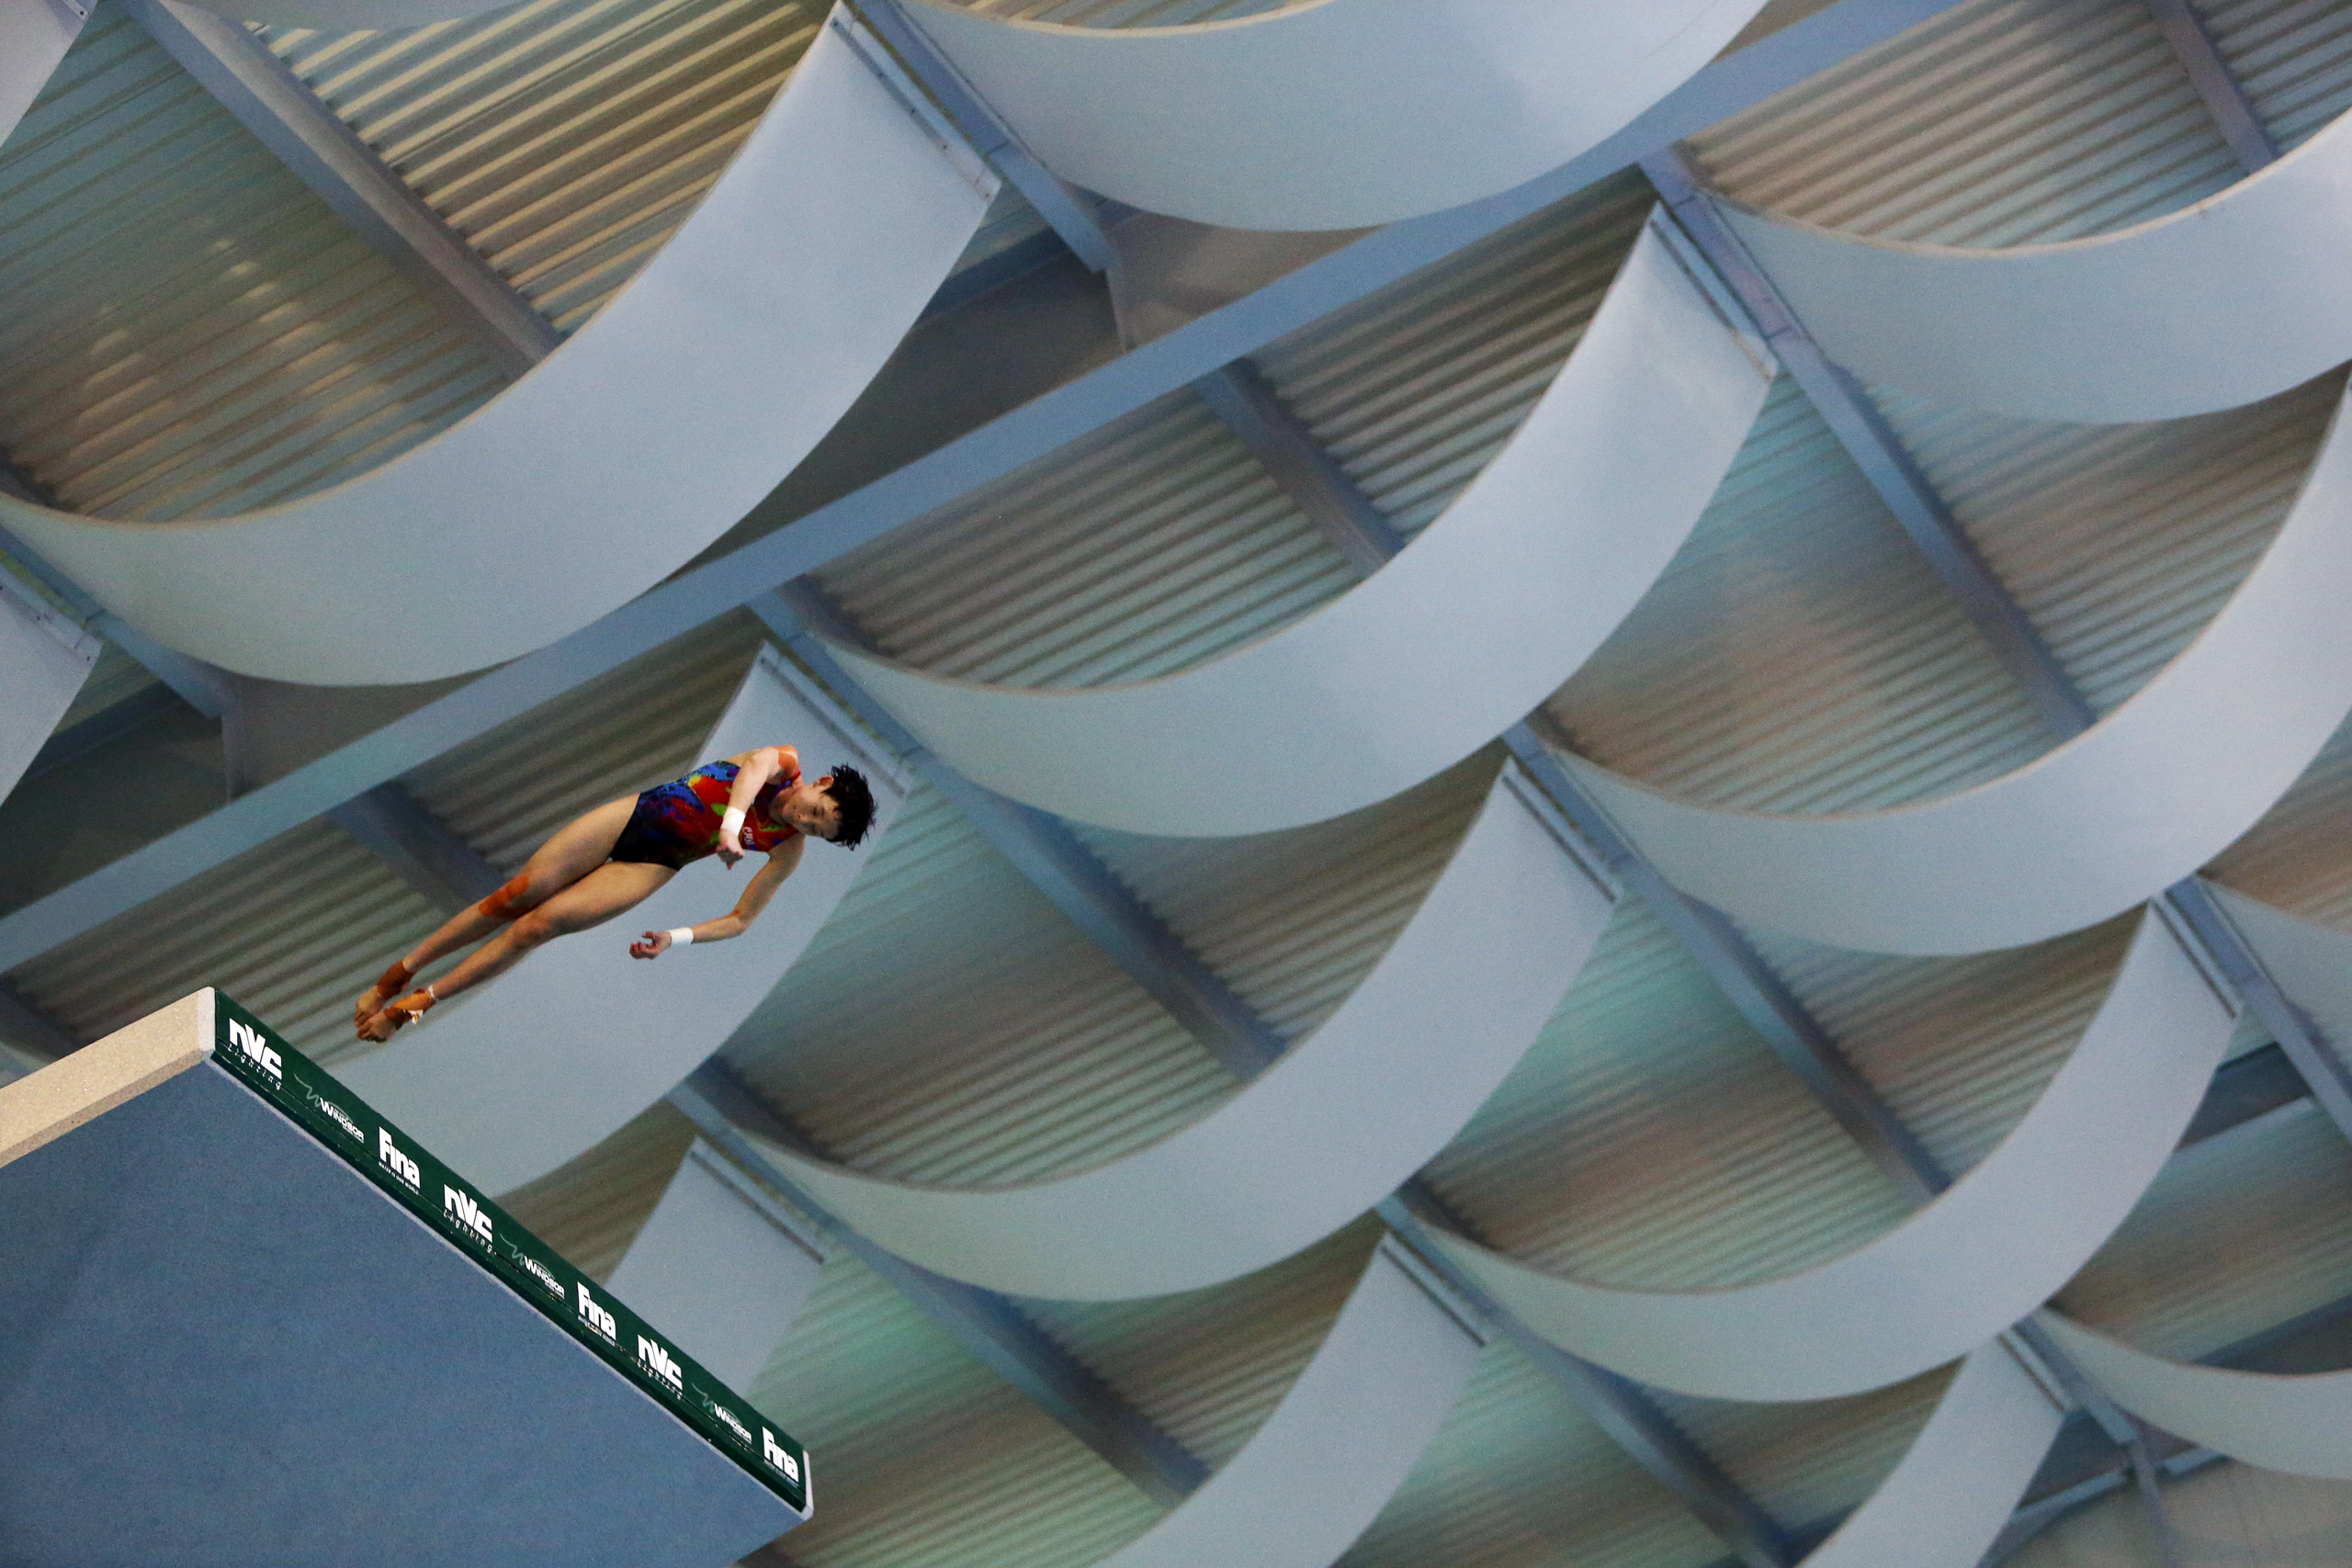 """<strong>Ren Qian, Diving, China</strong>On Feb. 21, one day after turning 15, Ren Qian walked to the edge of a platform in Rio de Janeiro and plunged the equivalent of a three-story building. Delivering a back 21-2 somersault and a half twist, the young diver slid into the pool with barely a ripple. The judges awarded Ren a perfect 10, cementing her victory in the 10-m platform diving World Cup event and establishing her as the latest in a line of Chinese diving prodigies cultivated by the state. """"They must start between the ages of 3 to 4,"""" says Yu Lianming, who has coached top divers for decades in China's vast network of state-run sports schools.                                   When Ren returns to Brazil in August, she'll be the prohibitive favorite in the high dive—and a critical part of a 13--person Chinese squad that has the talent to sweep the Olympic diving golds. (China won all but two in London in 2012.) In a sport in which American women are no threat to medal, the crop-haired athlete's toughest competition comes from her compatriots. —H.B."""